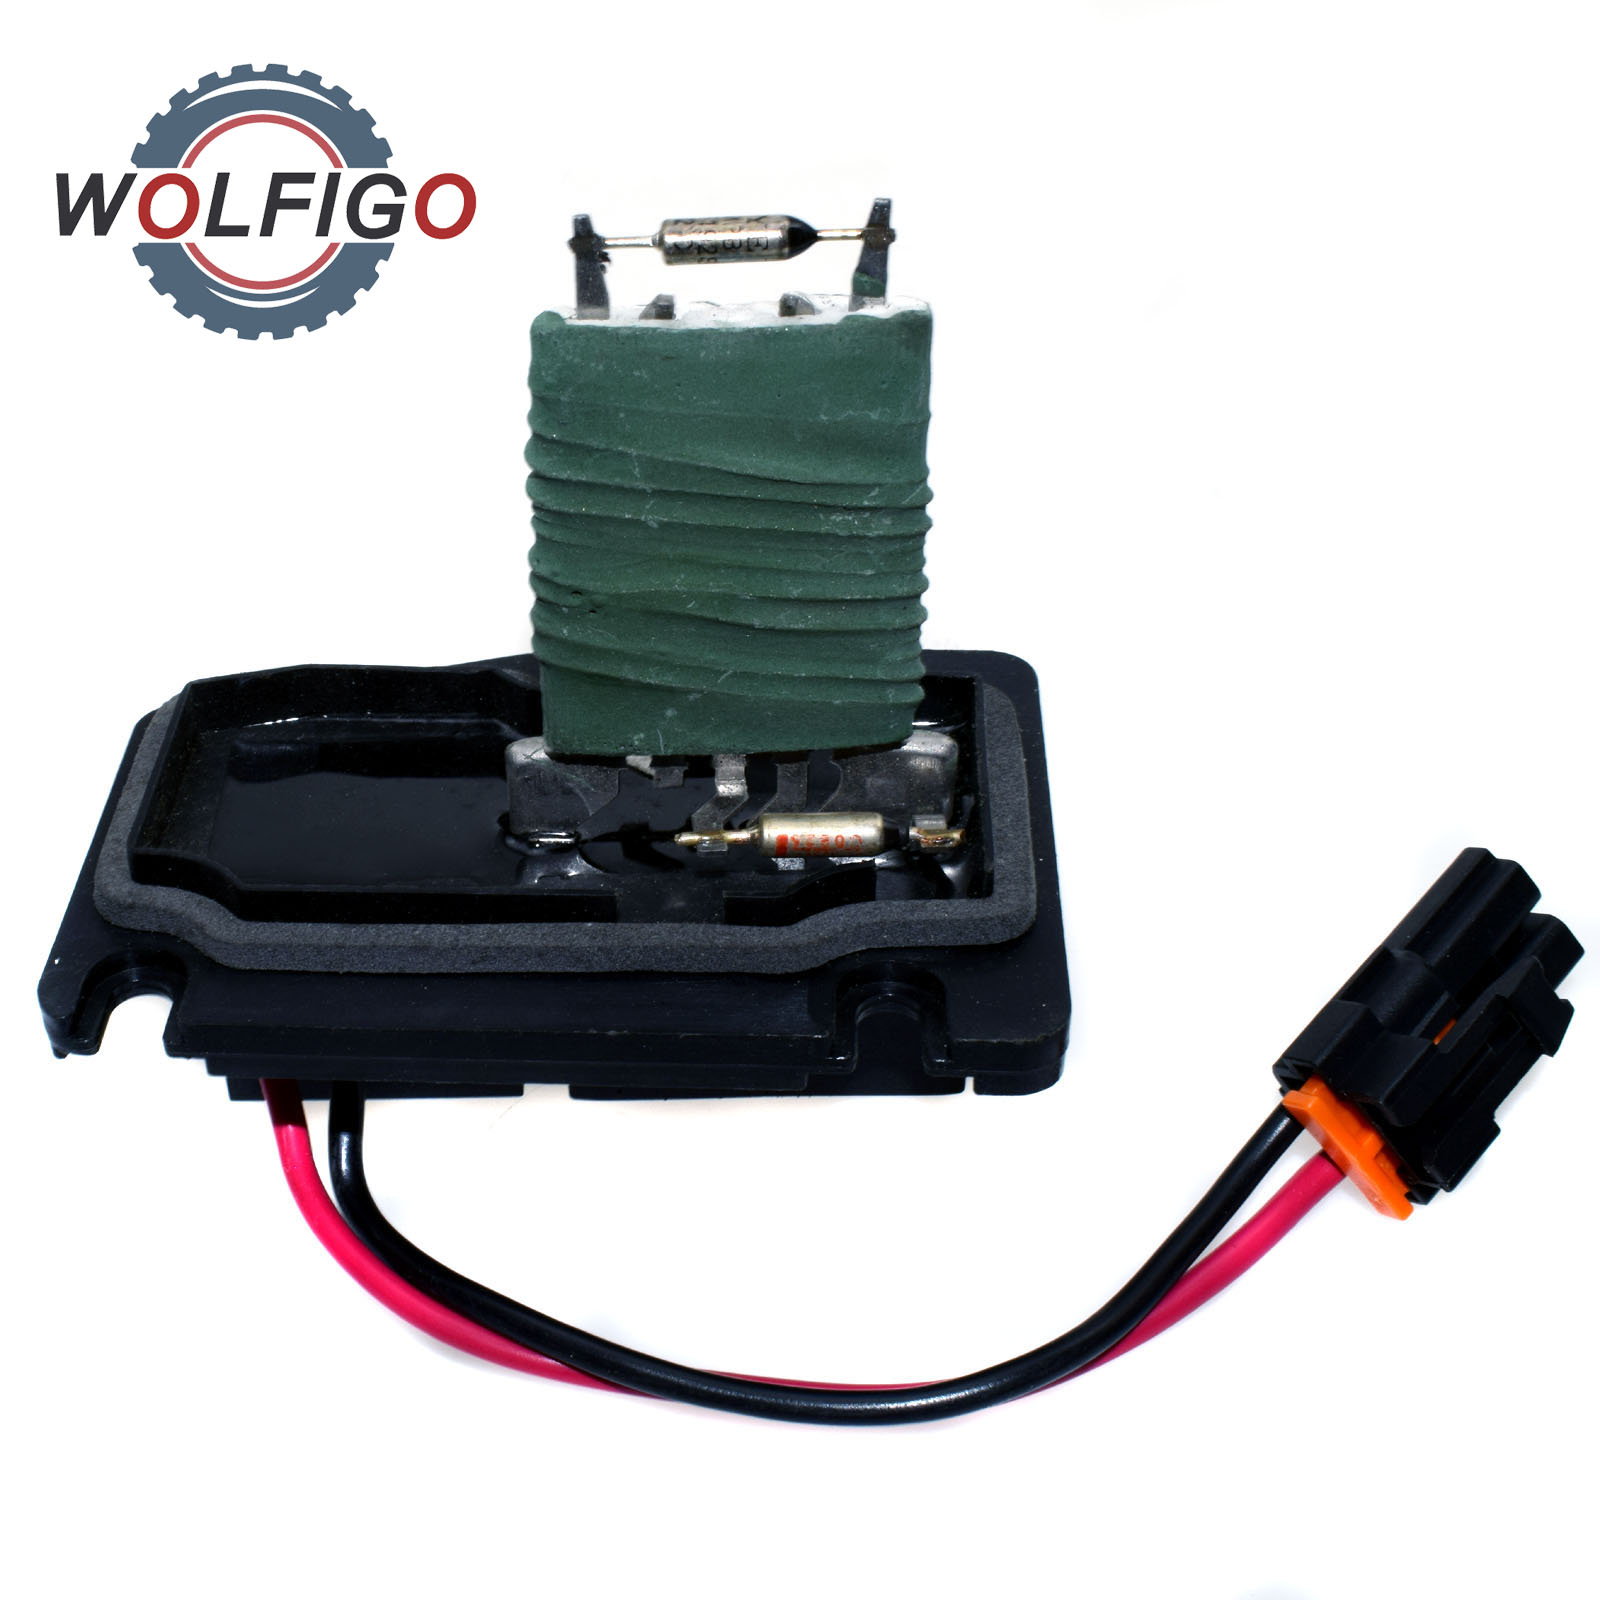 US $15 15 12% OFF|WOLFIGO Heater Fan Speed Regulator A/C Blower Motor  Resistor Fuse for Buick Chevy Oldsmobile Pontiac 12135102 15304891  15393829-in